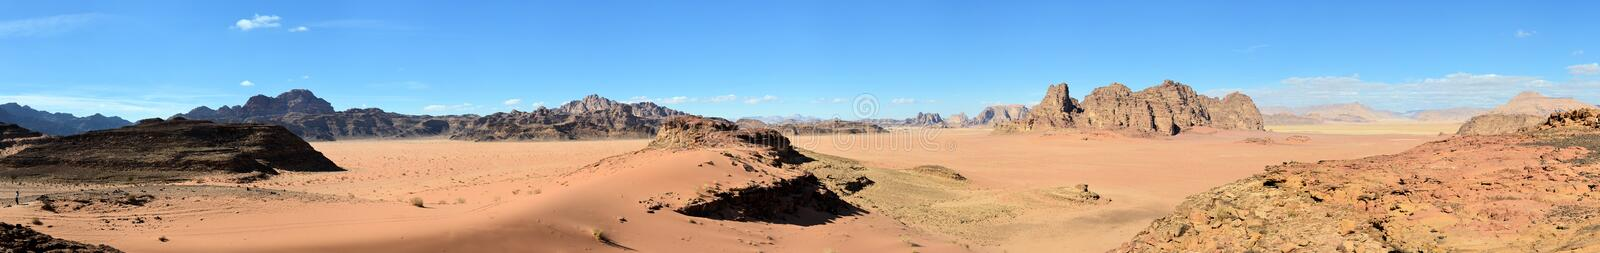 Panorama de Wadi Rum images stock